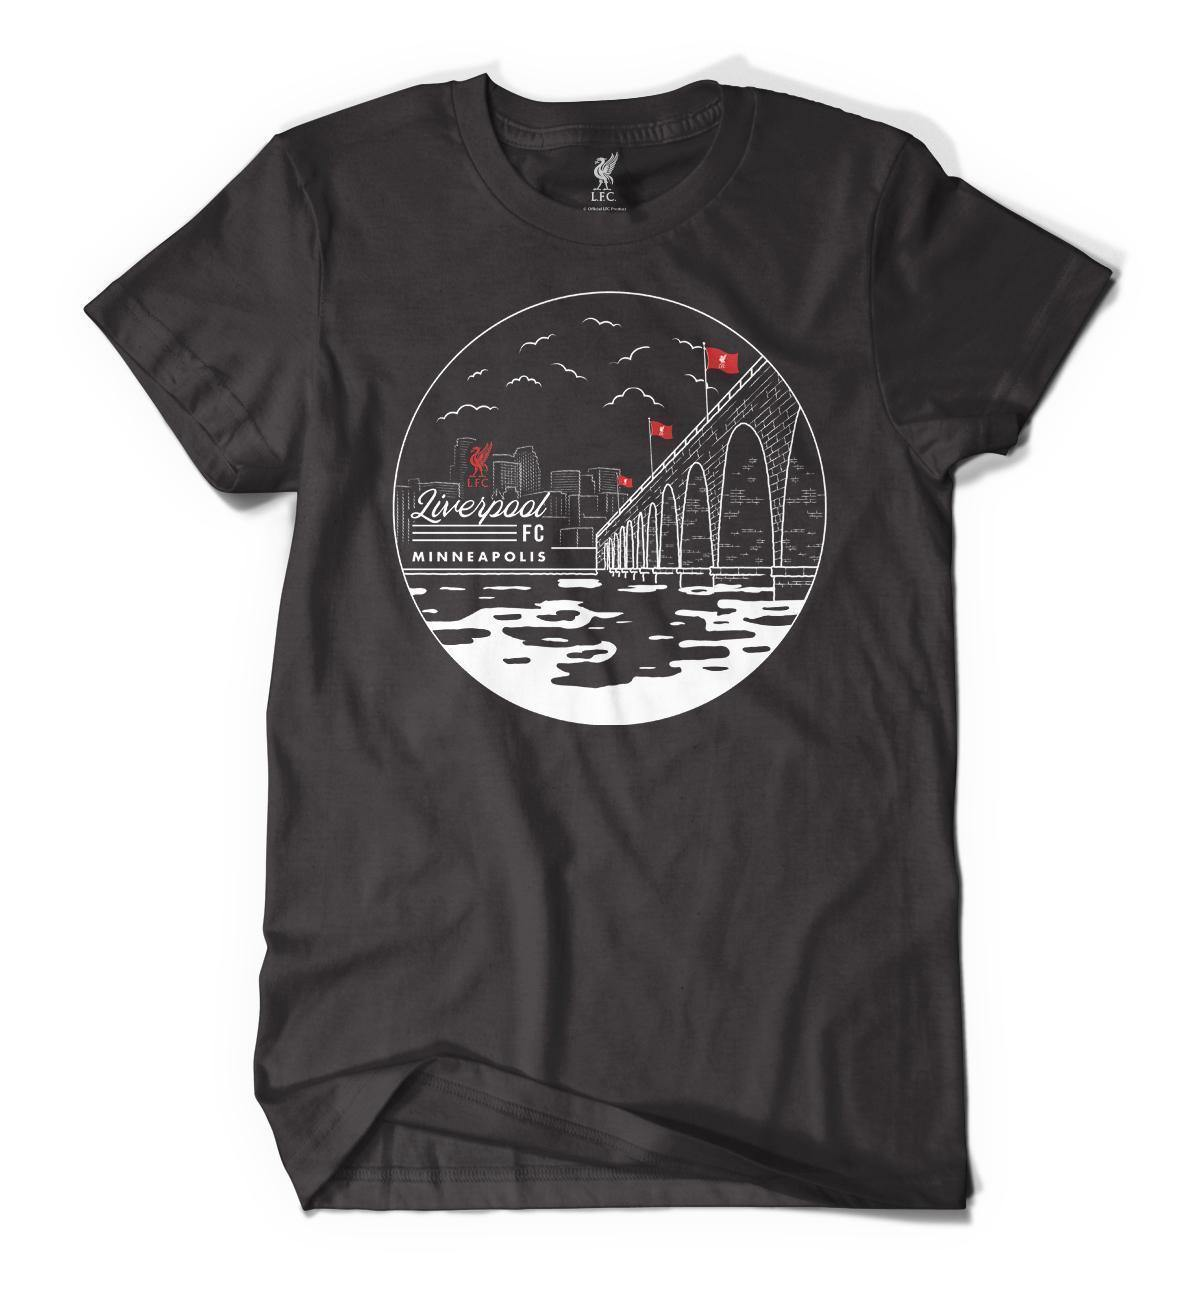 LFC Landmark Collection Minneapolis T-Shirt